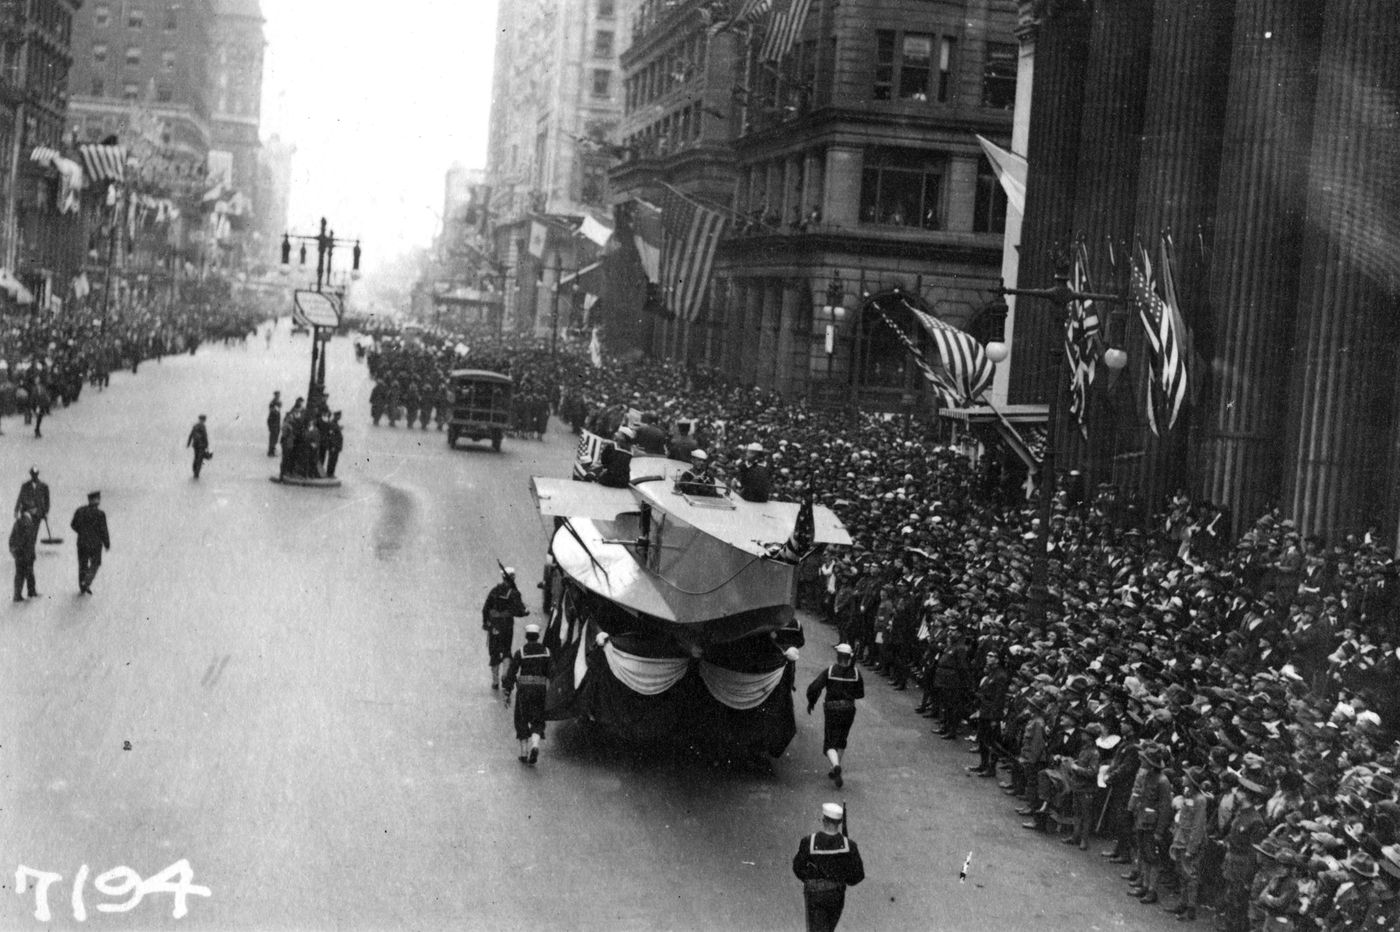 In 1918, it was Spanish influenza that afflicted Philadelphia sports